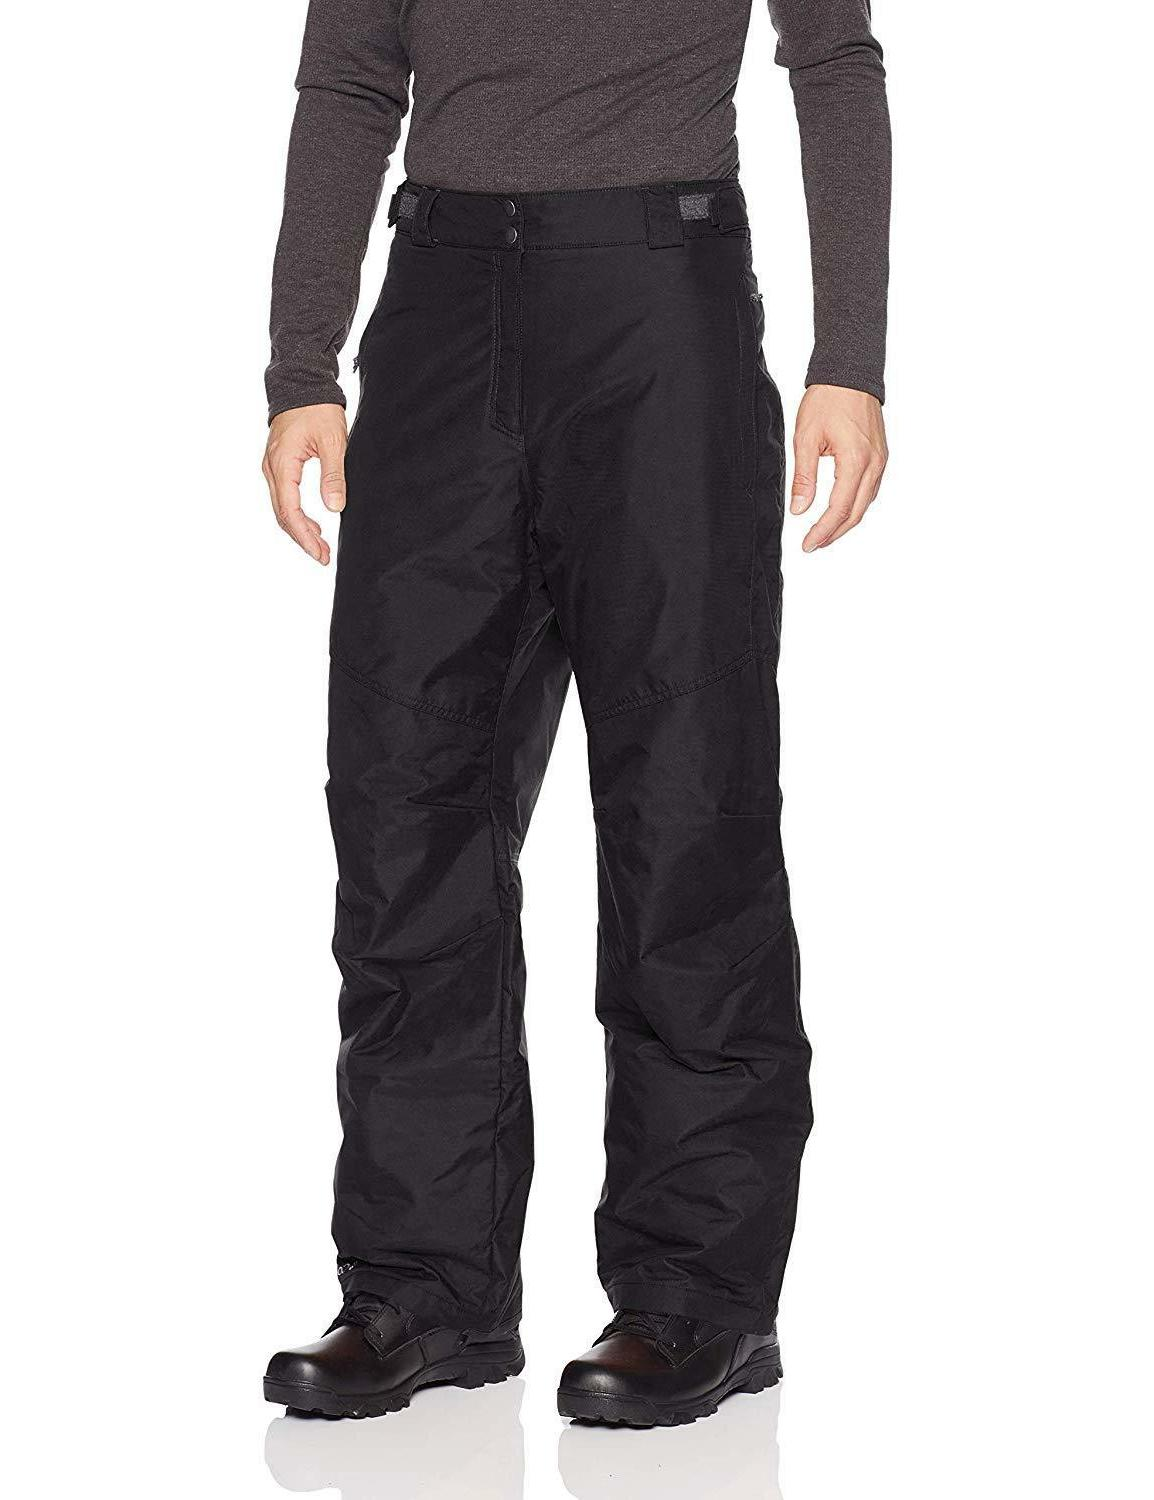 Columbia Men's Pant, Waterproof and